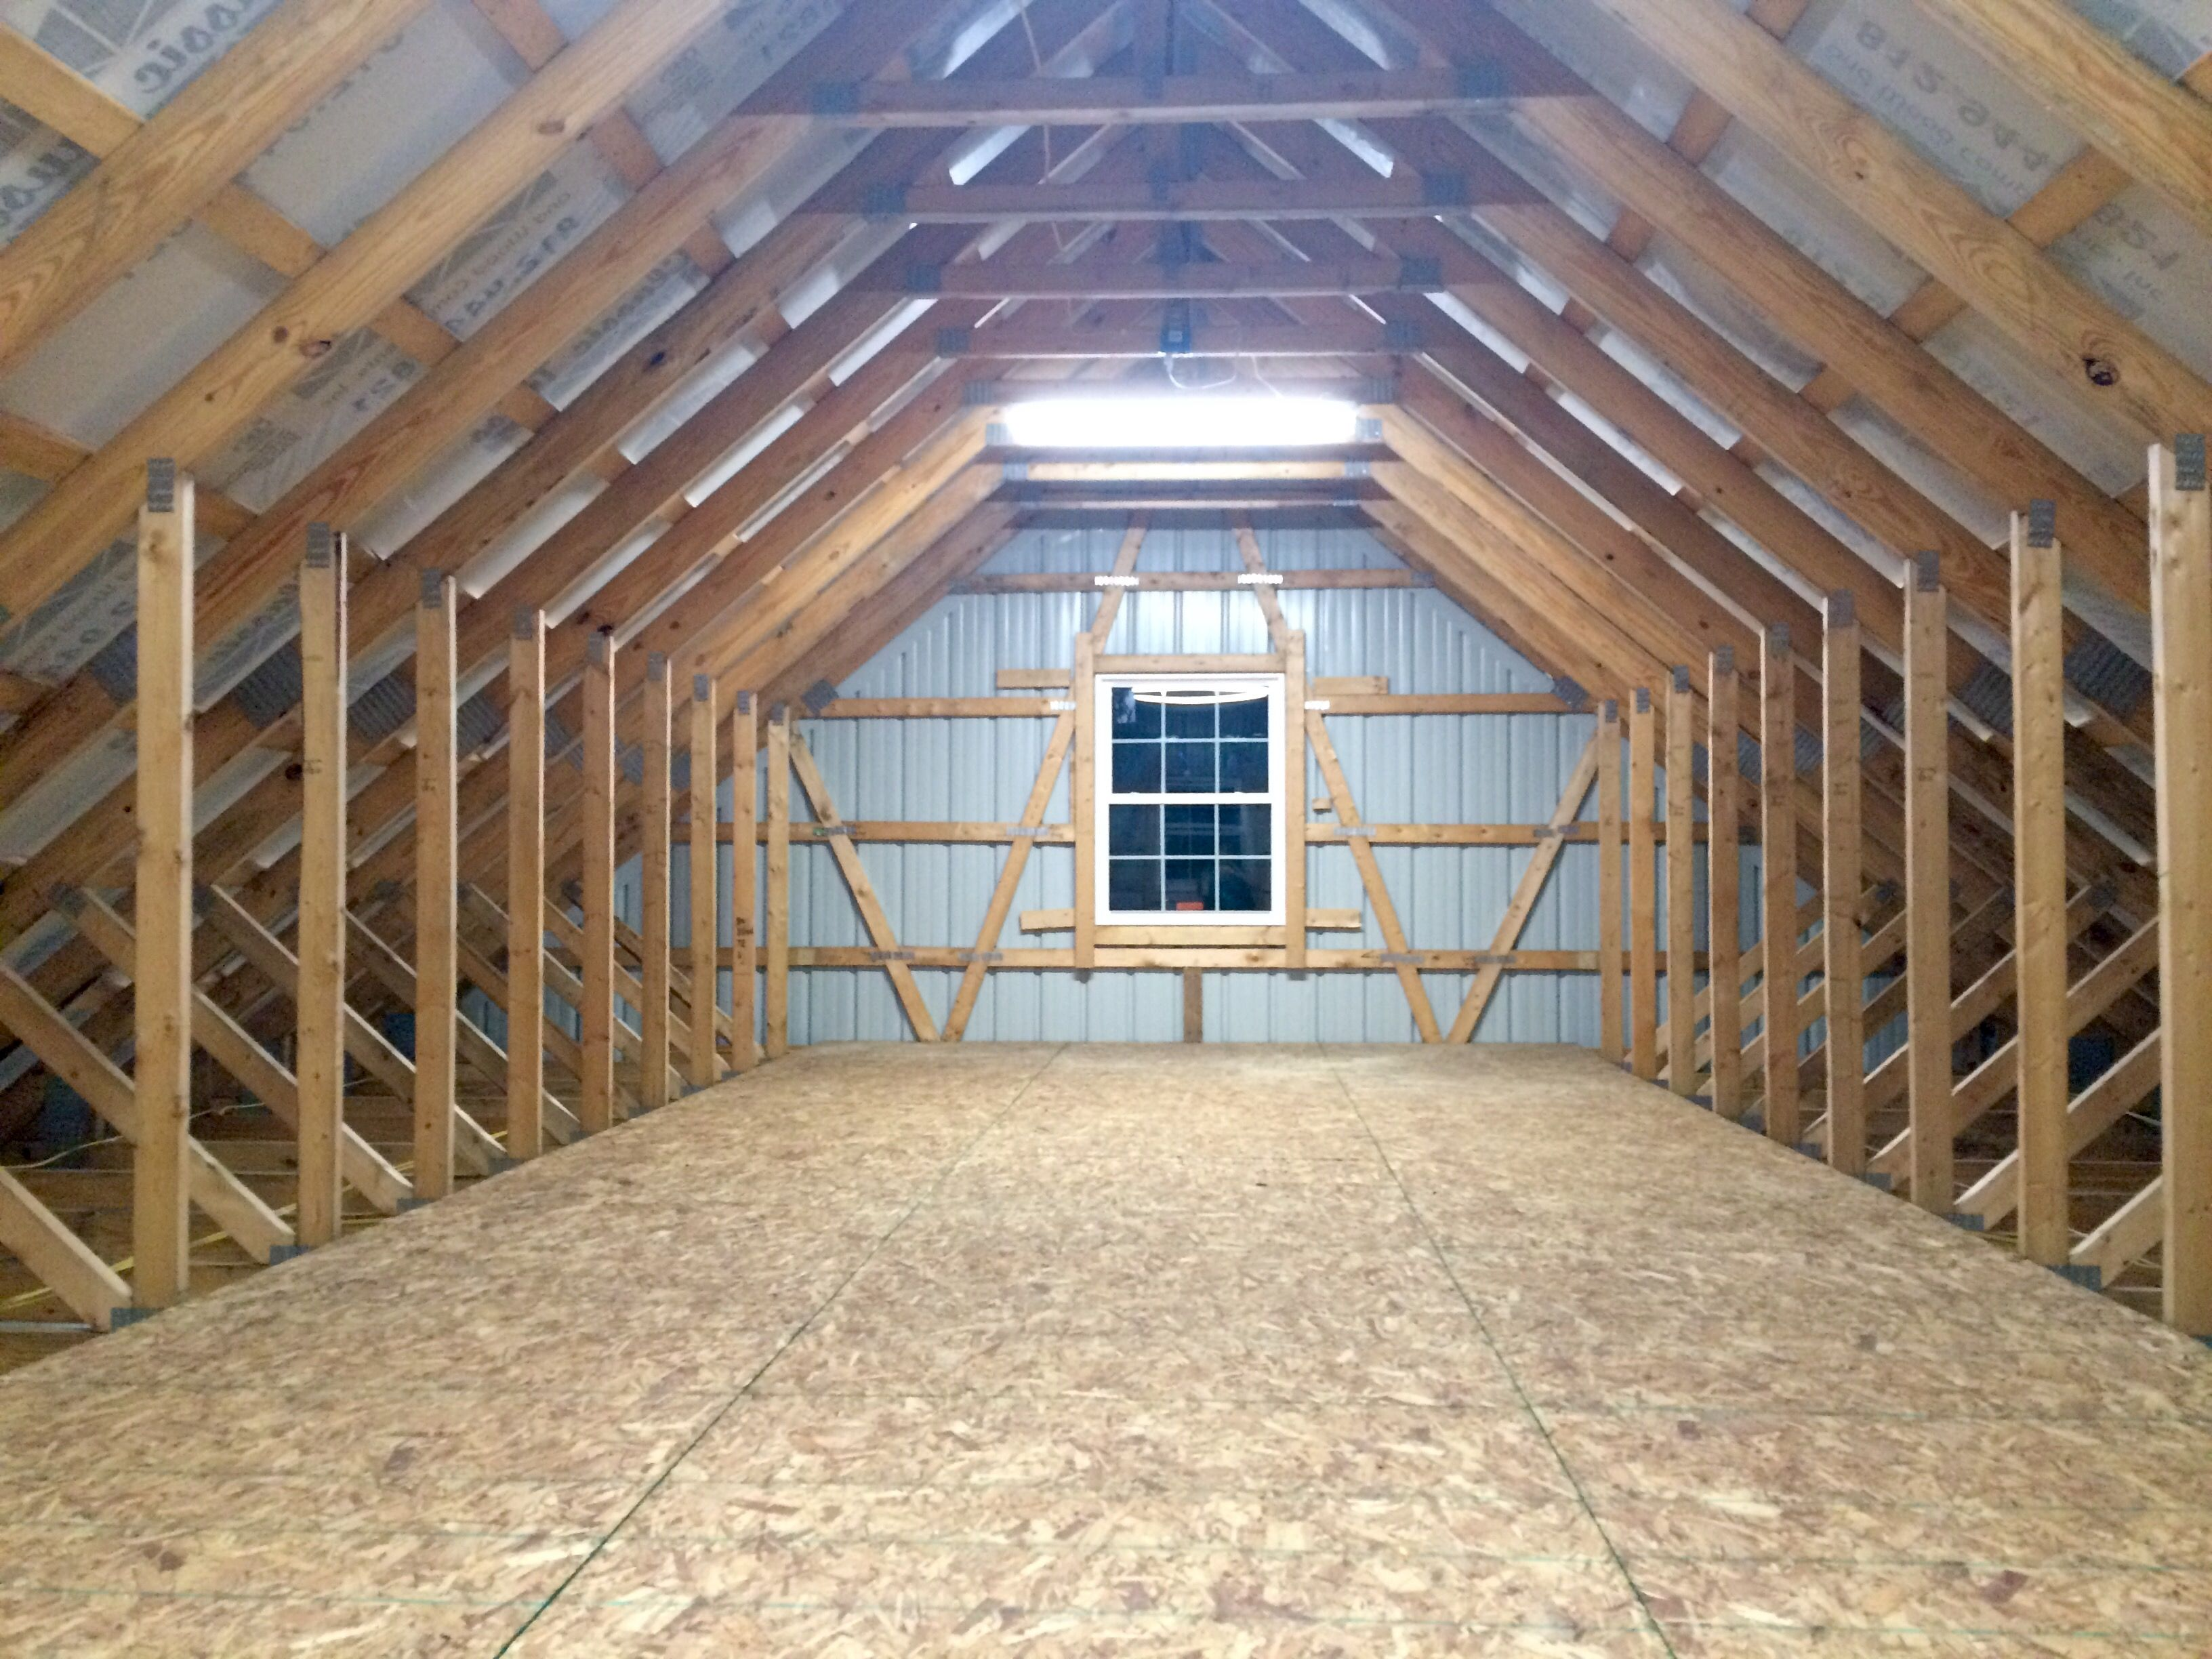 Newly Constructed Pole Barn This Is The 32 X 12 X 9 Unfinished Attic Space Accomplished By Using Pre Made Att Pole Barn Homes Pole Barn House Plans Pole Barn